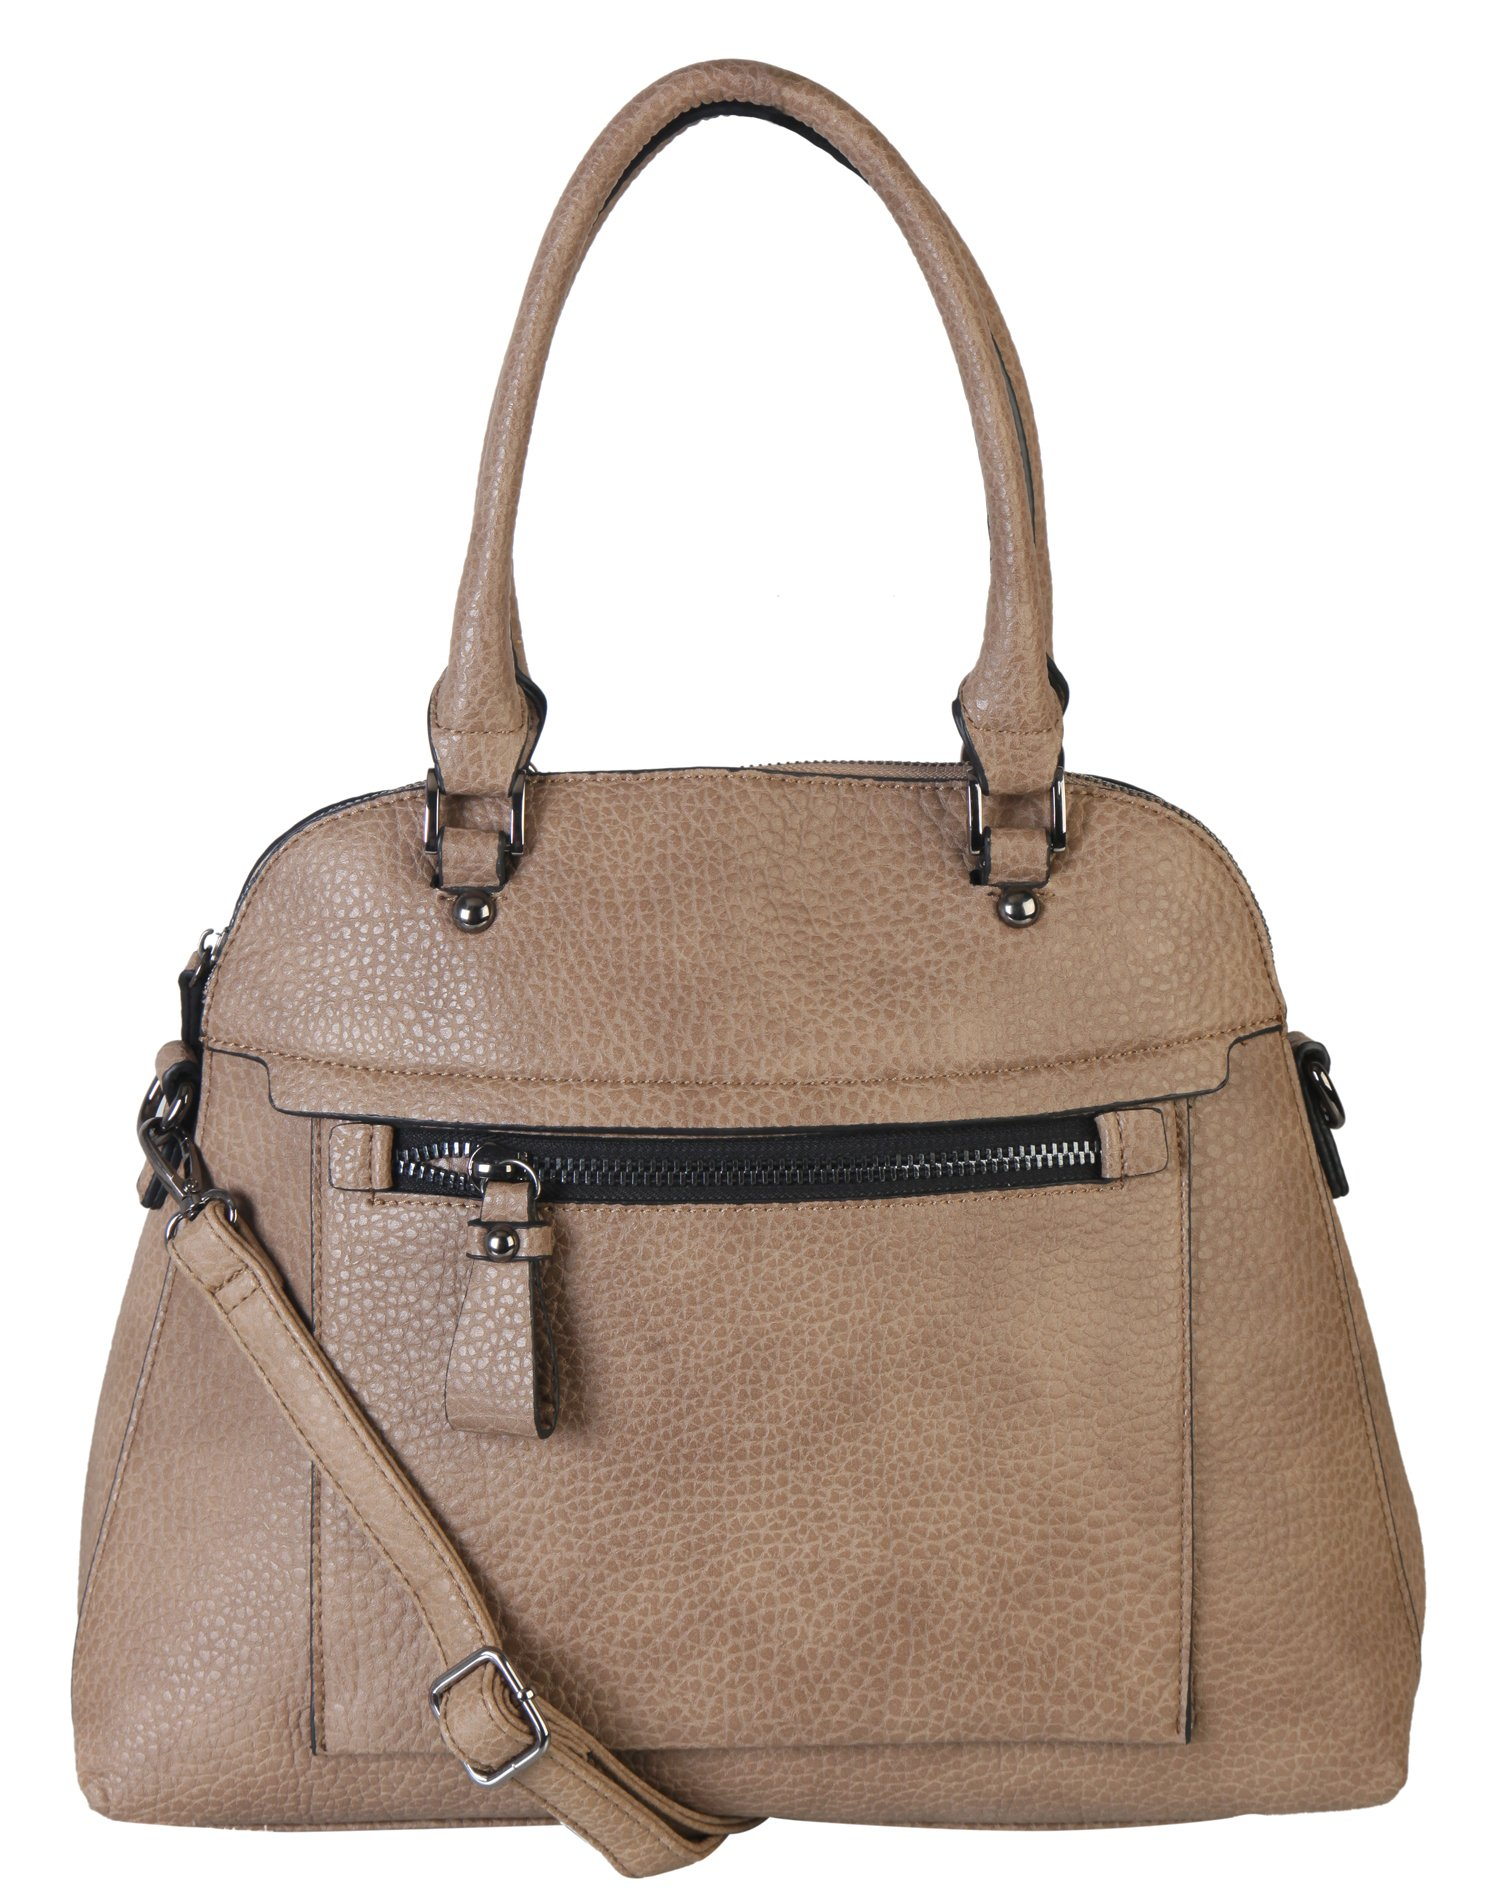 Diophy Large Faux PU Leather Tote Woman Business Shoulder Handbag With Removable Strap ZD-2498 Khaki by Diophy